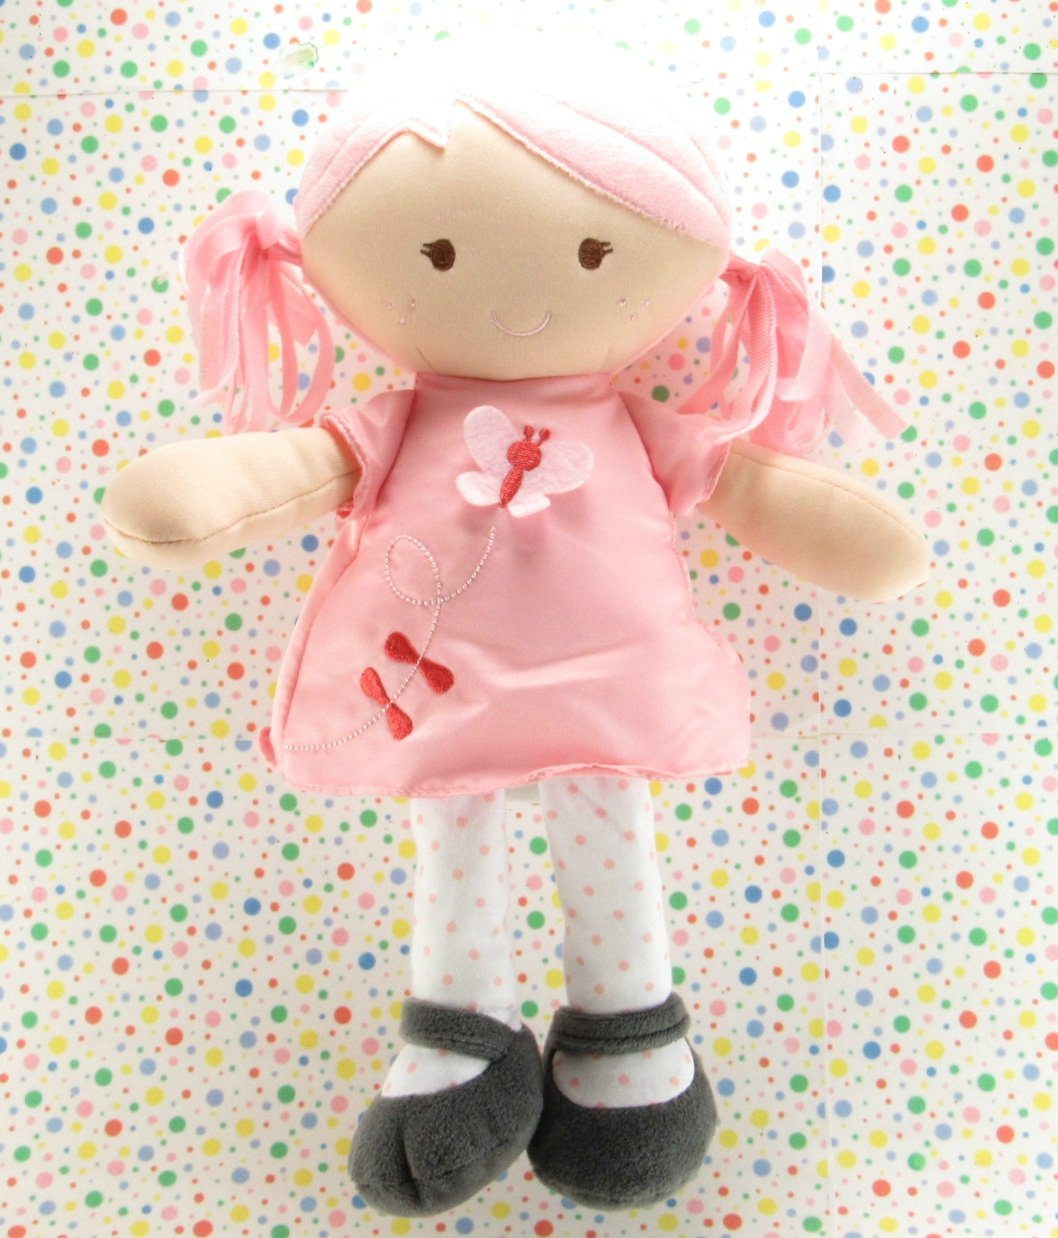 Kids Preferred Pink Doll Ella Doll Soft Dolly Plush Doll Pink Hair